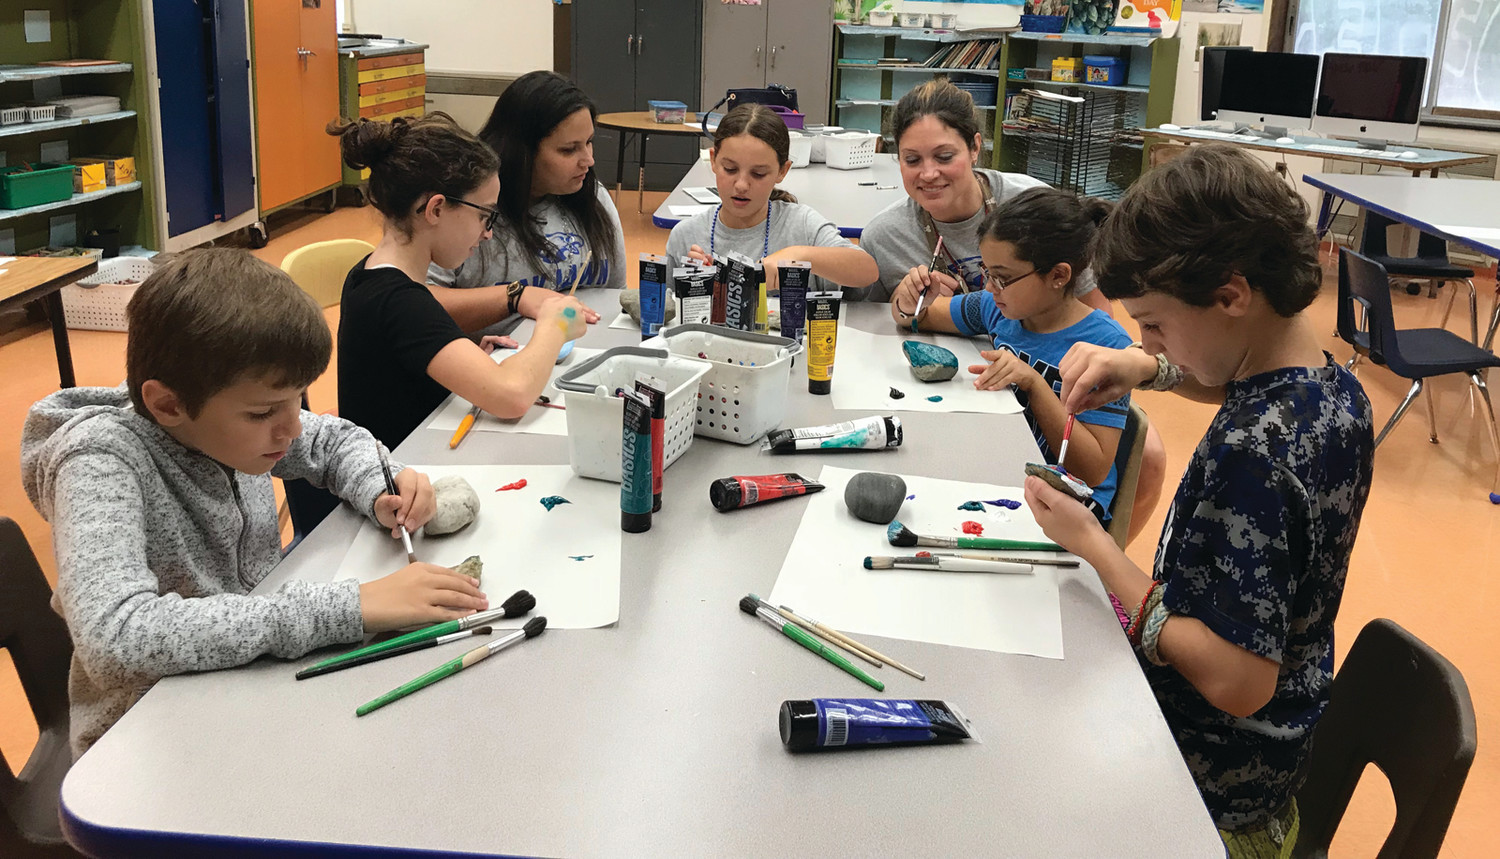 ROCKIN' ON: Students in Mrs. Mancuso's grade 5 classroom work on their community rock project. L-R, Jonah Silva, Francesca Paola, Mancuso, Avery Ashegh, Iacovone, Ava Silveira and Harry Coupe.